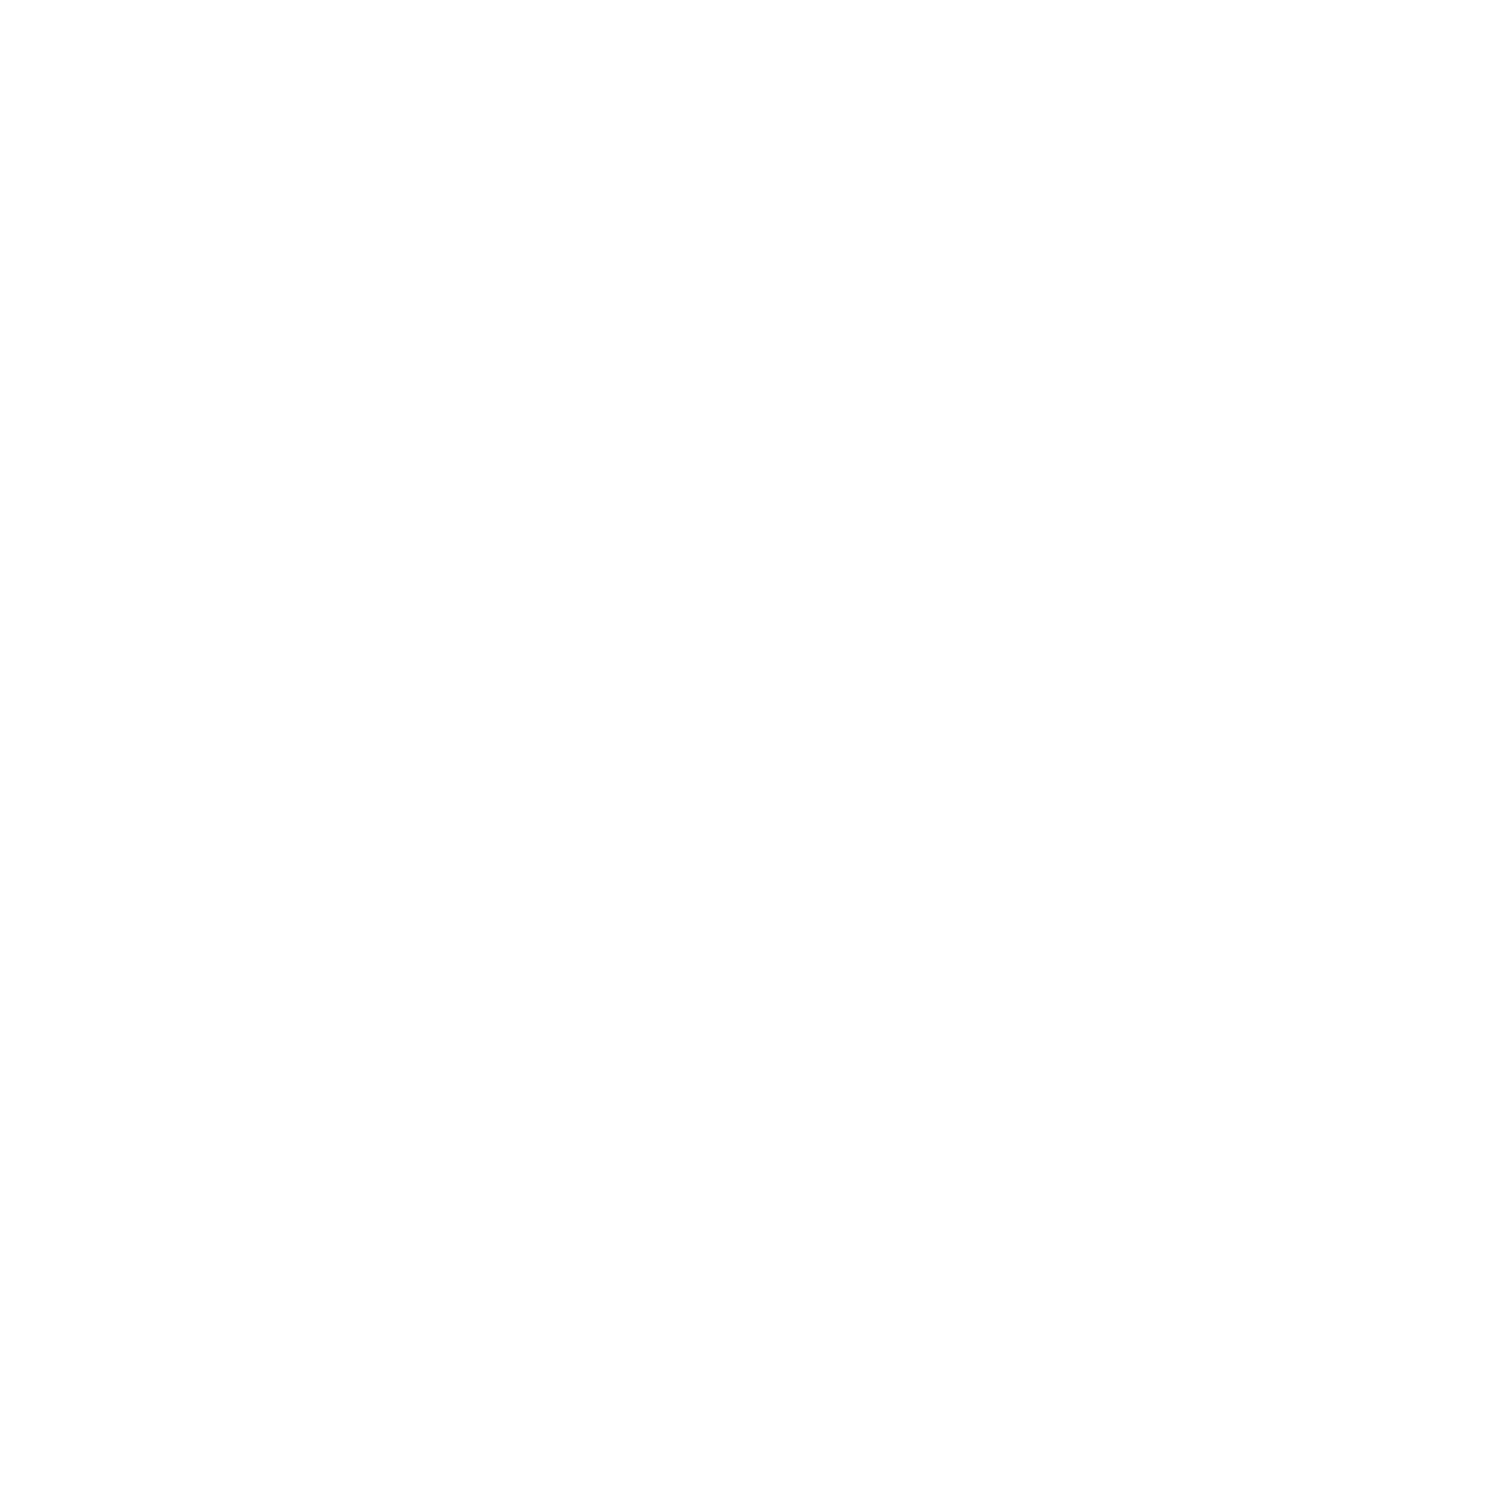 Chicago Area Regional Representatives (CARR)